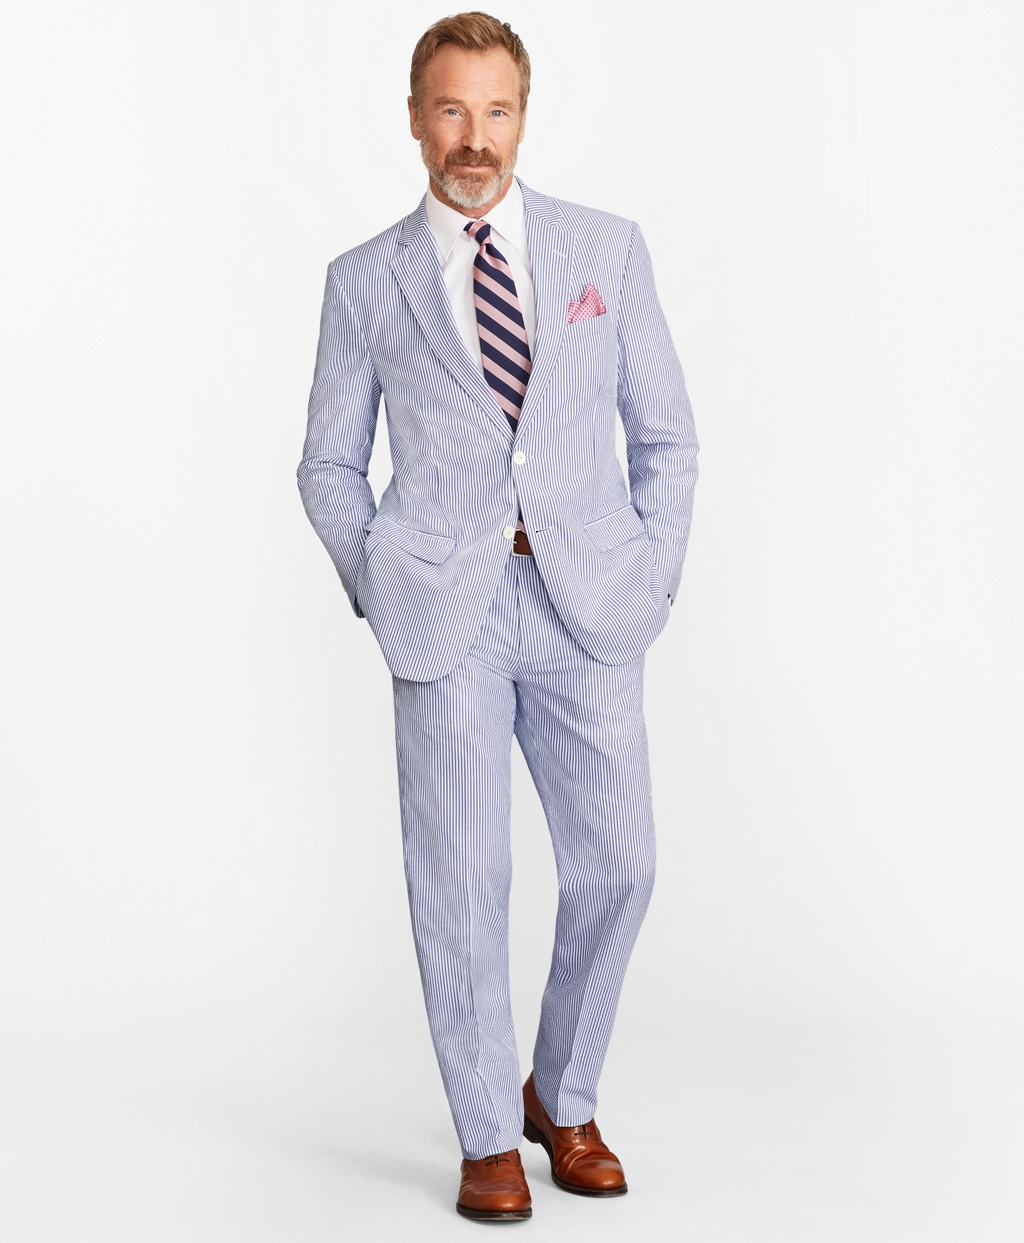 Men's Vintage Style Suits, Classic Suits Brooks Brothers Mens Regular Fit Stripe Seersucker Suit $373.50 AT vintagedancer.com